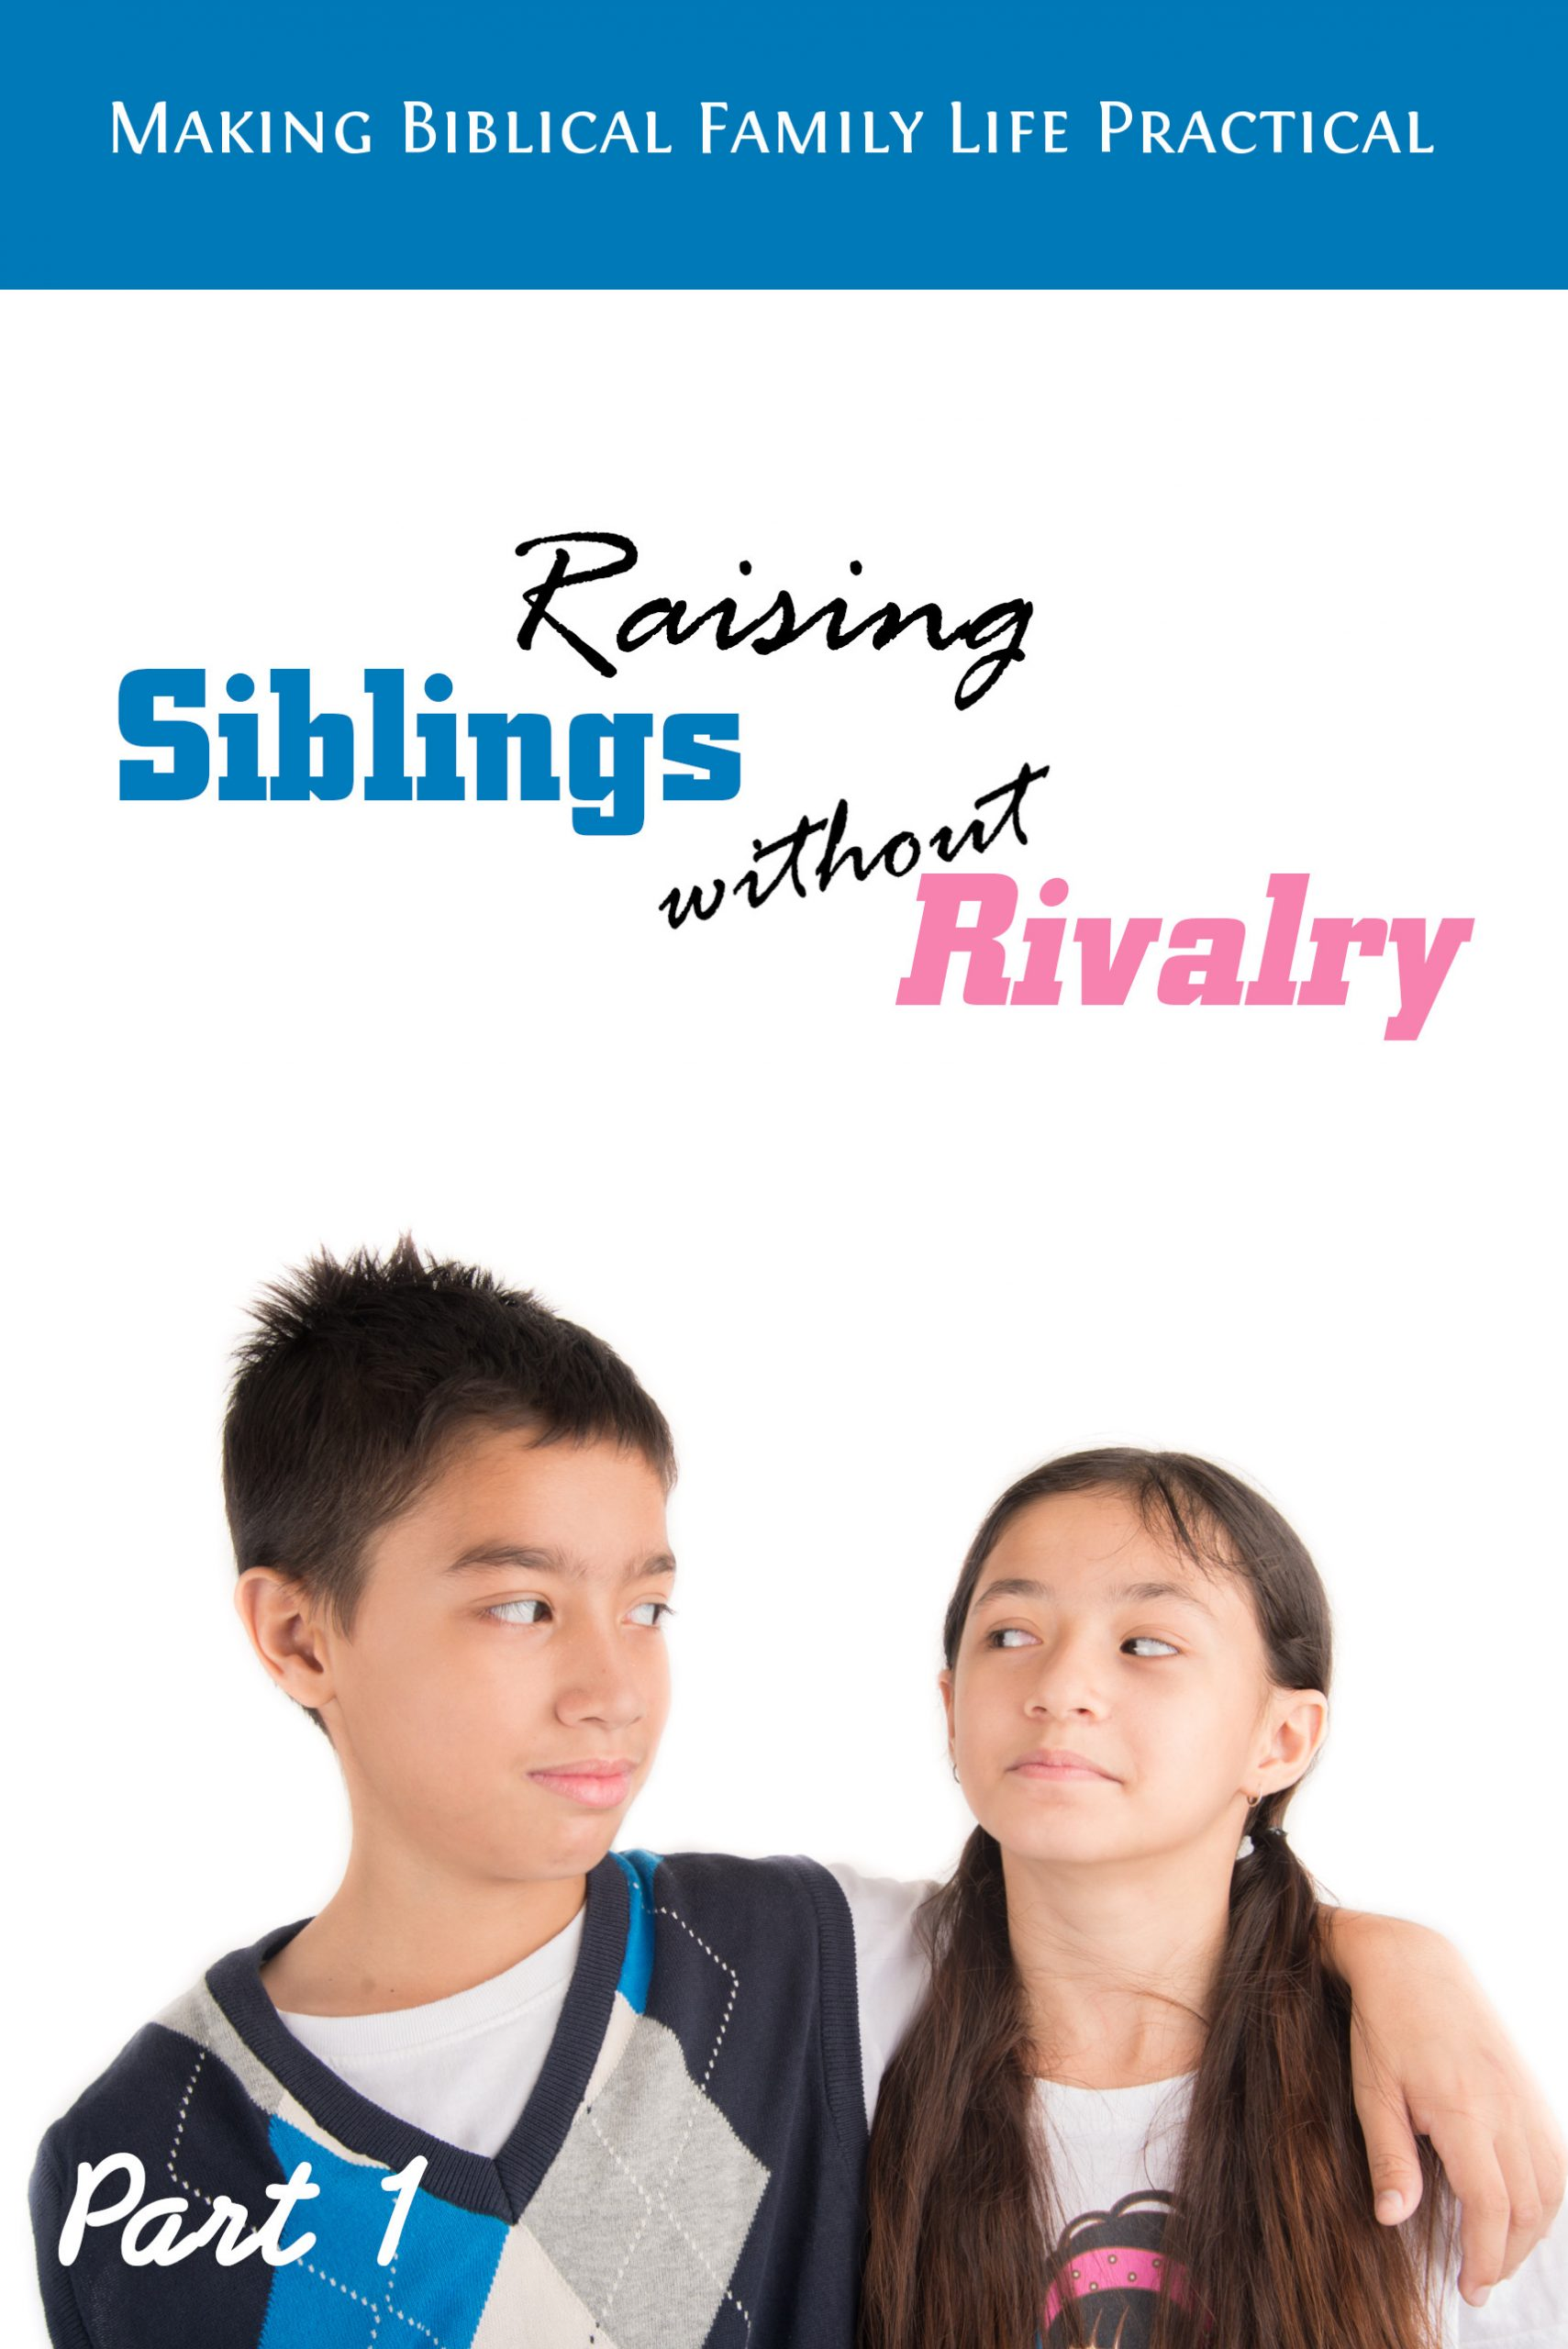 Raising kids without rivalry at home